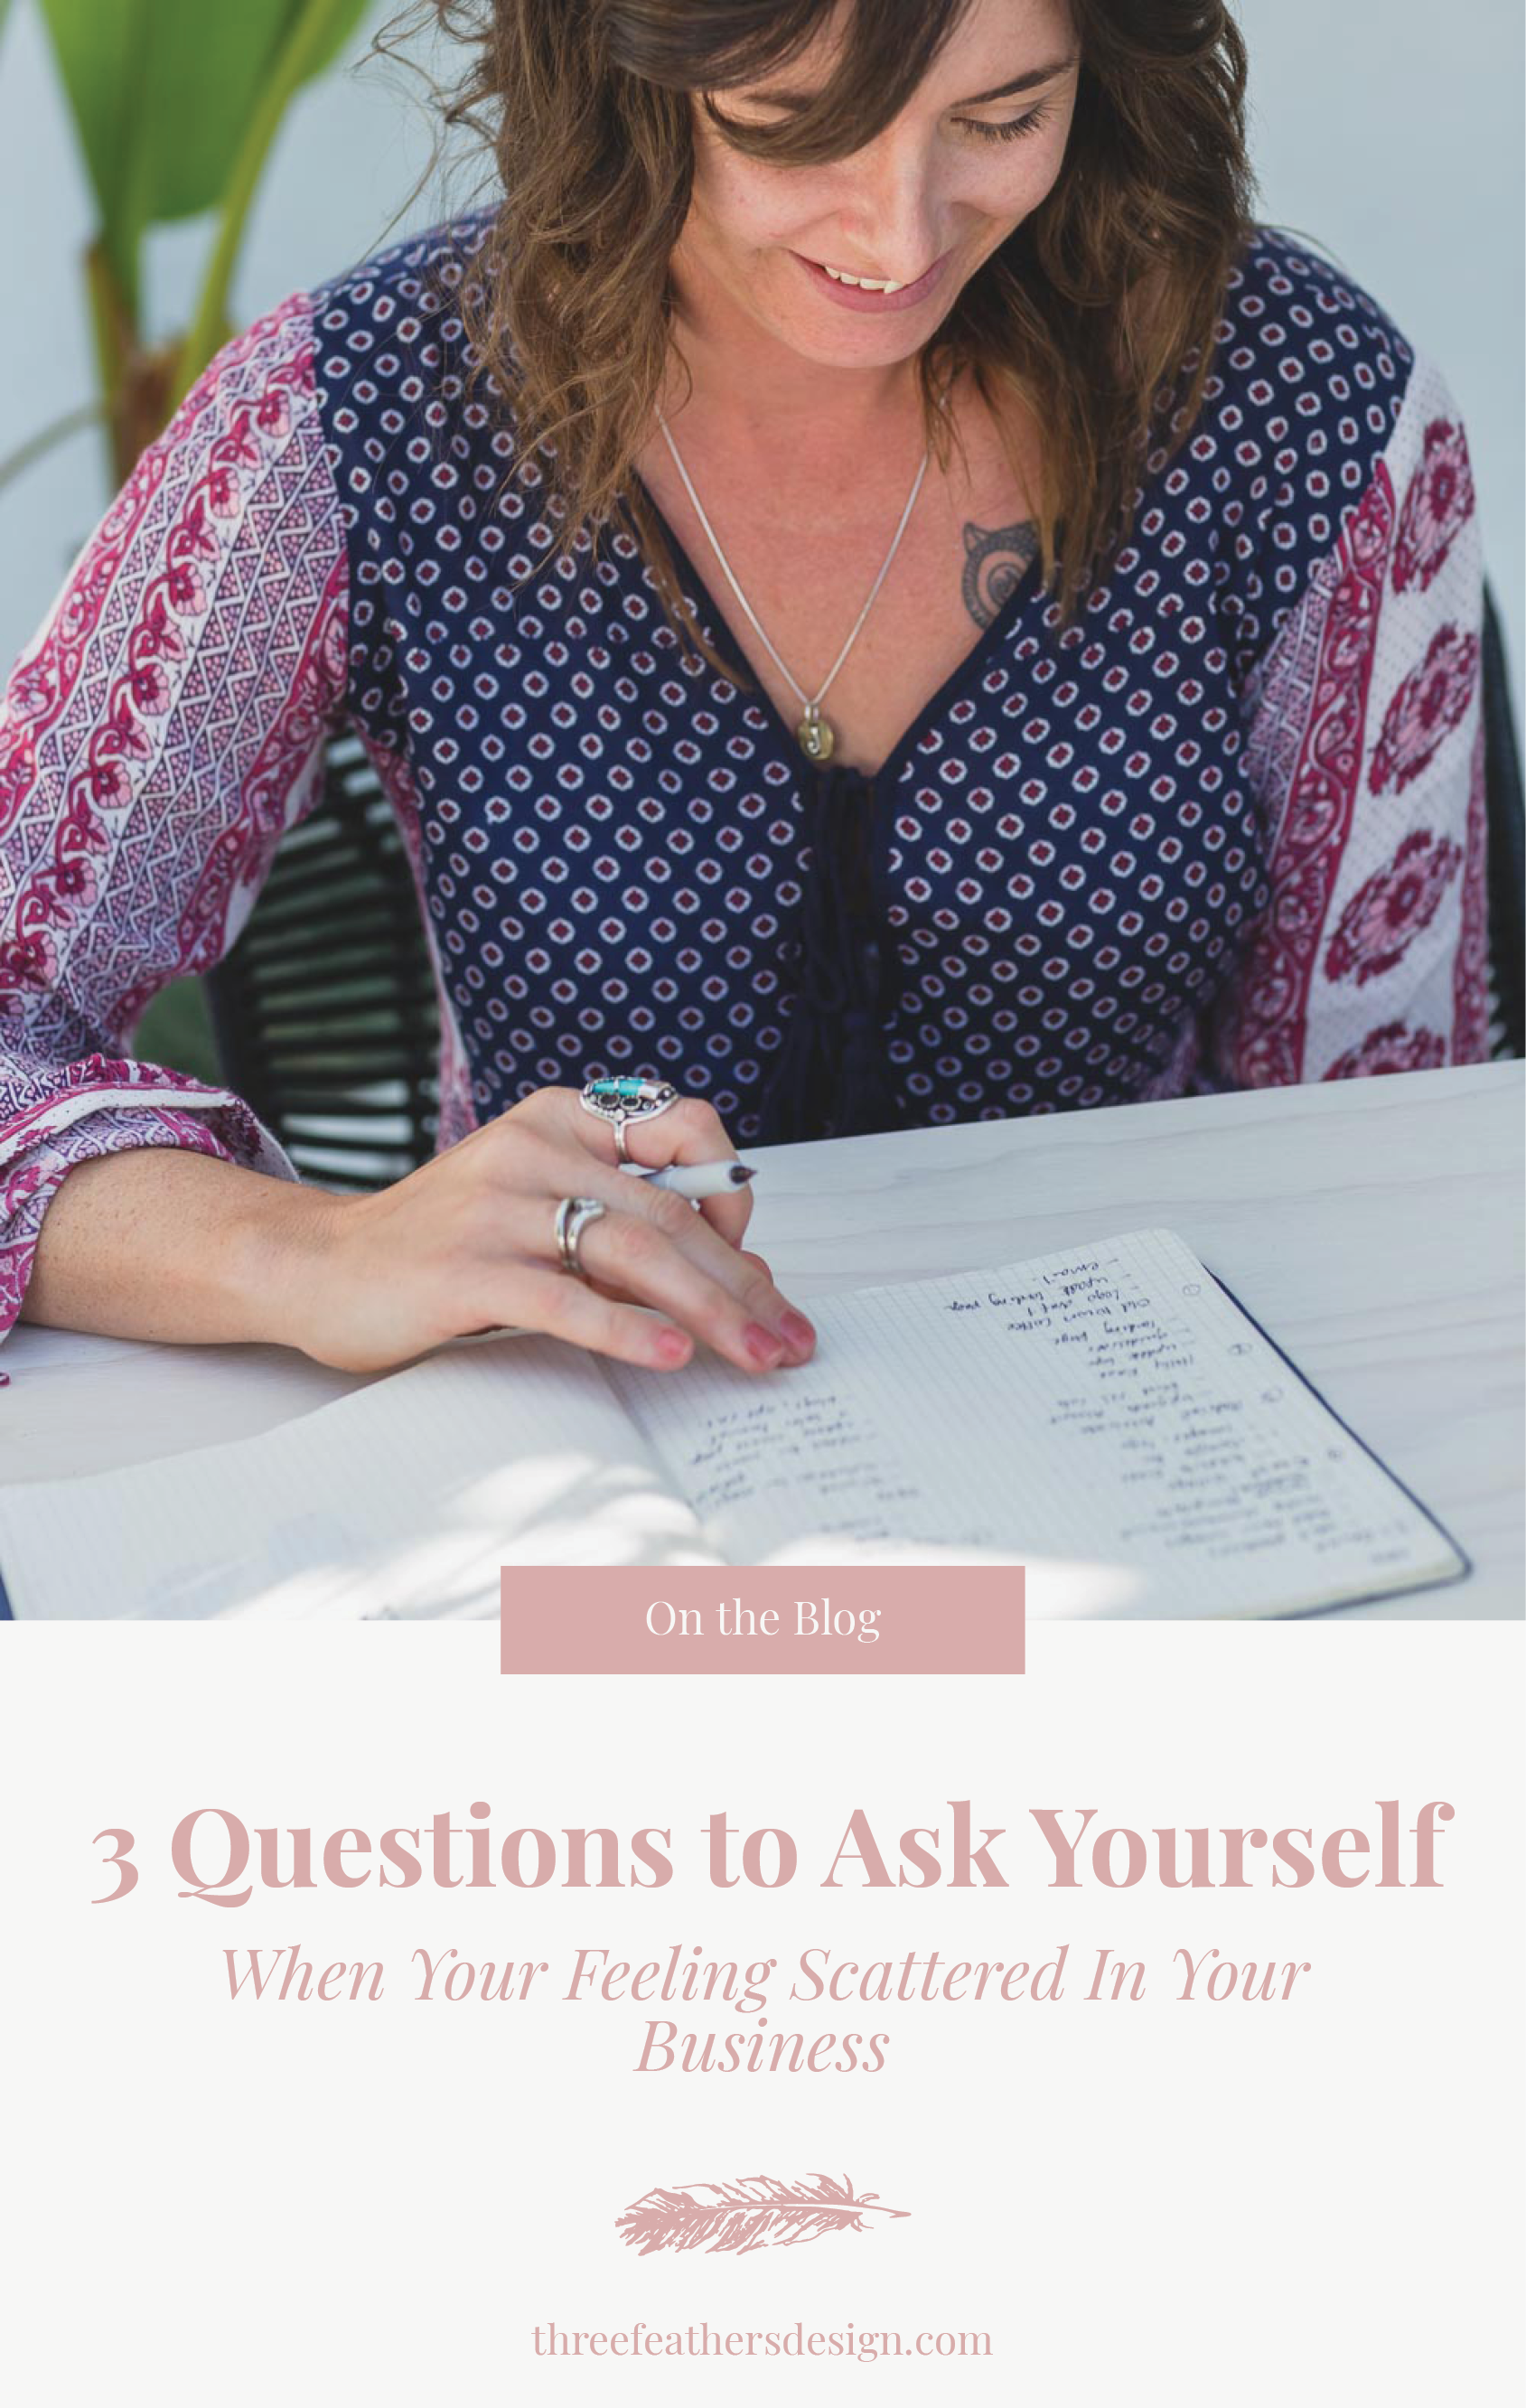 3 Questions to Ask Yourself When Your Feeling Scattered In Your Business   Three Feathers Design   threefeathersdesign.com